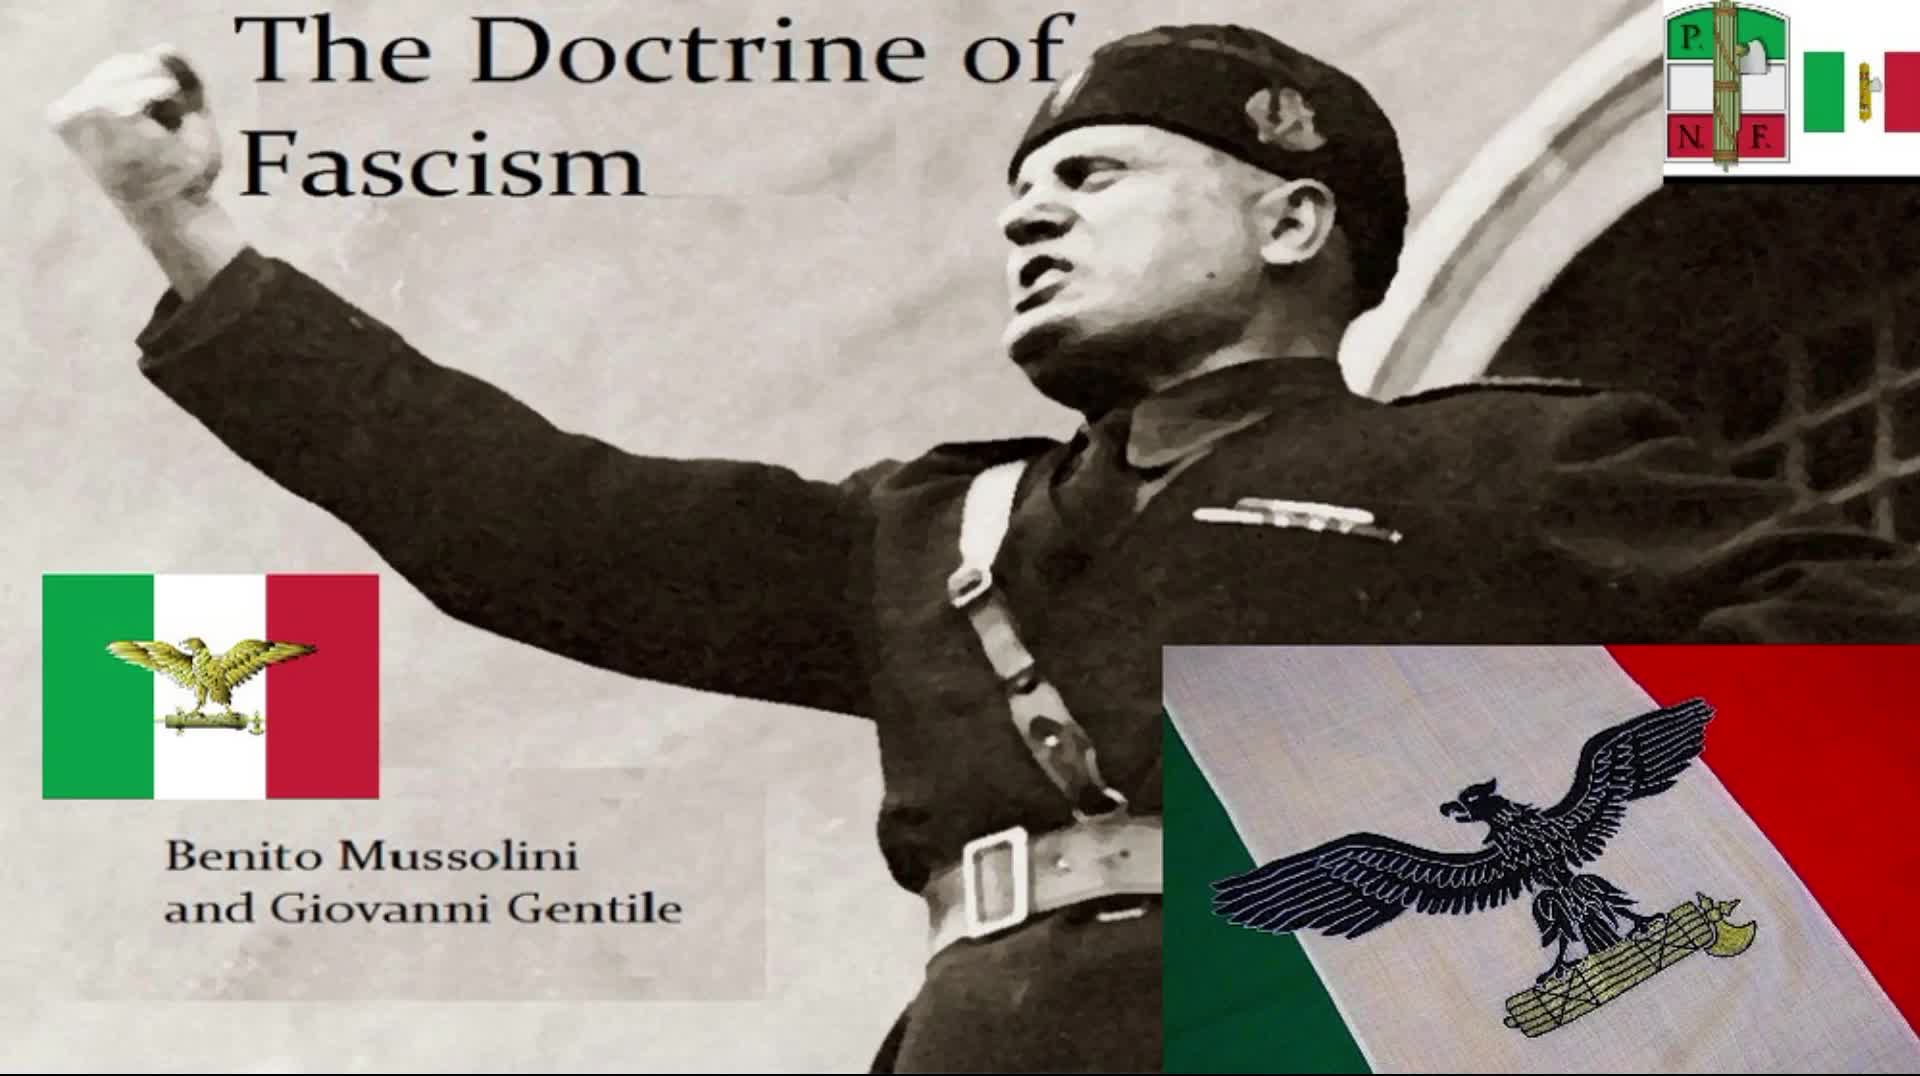 Doctrine Of Fascism by Giovanni Gentile and Benito Mussolini (1927)